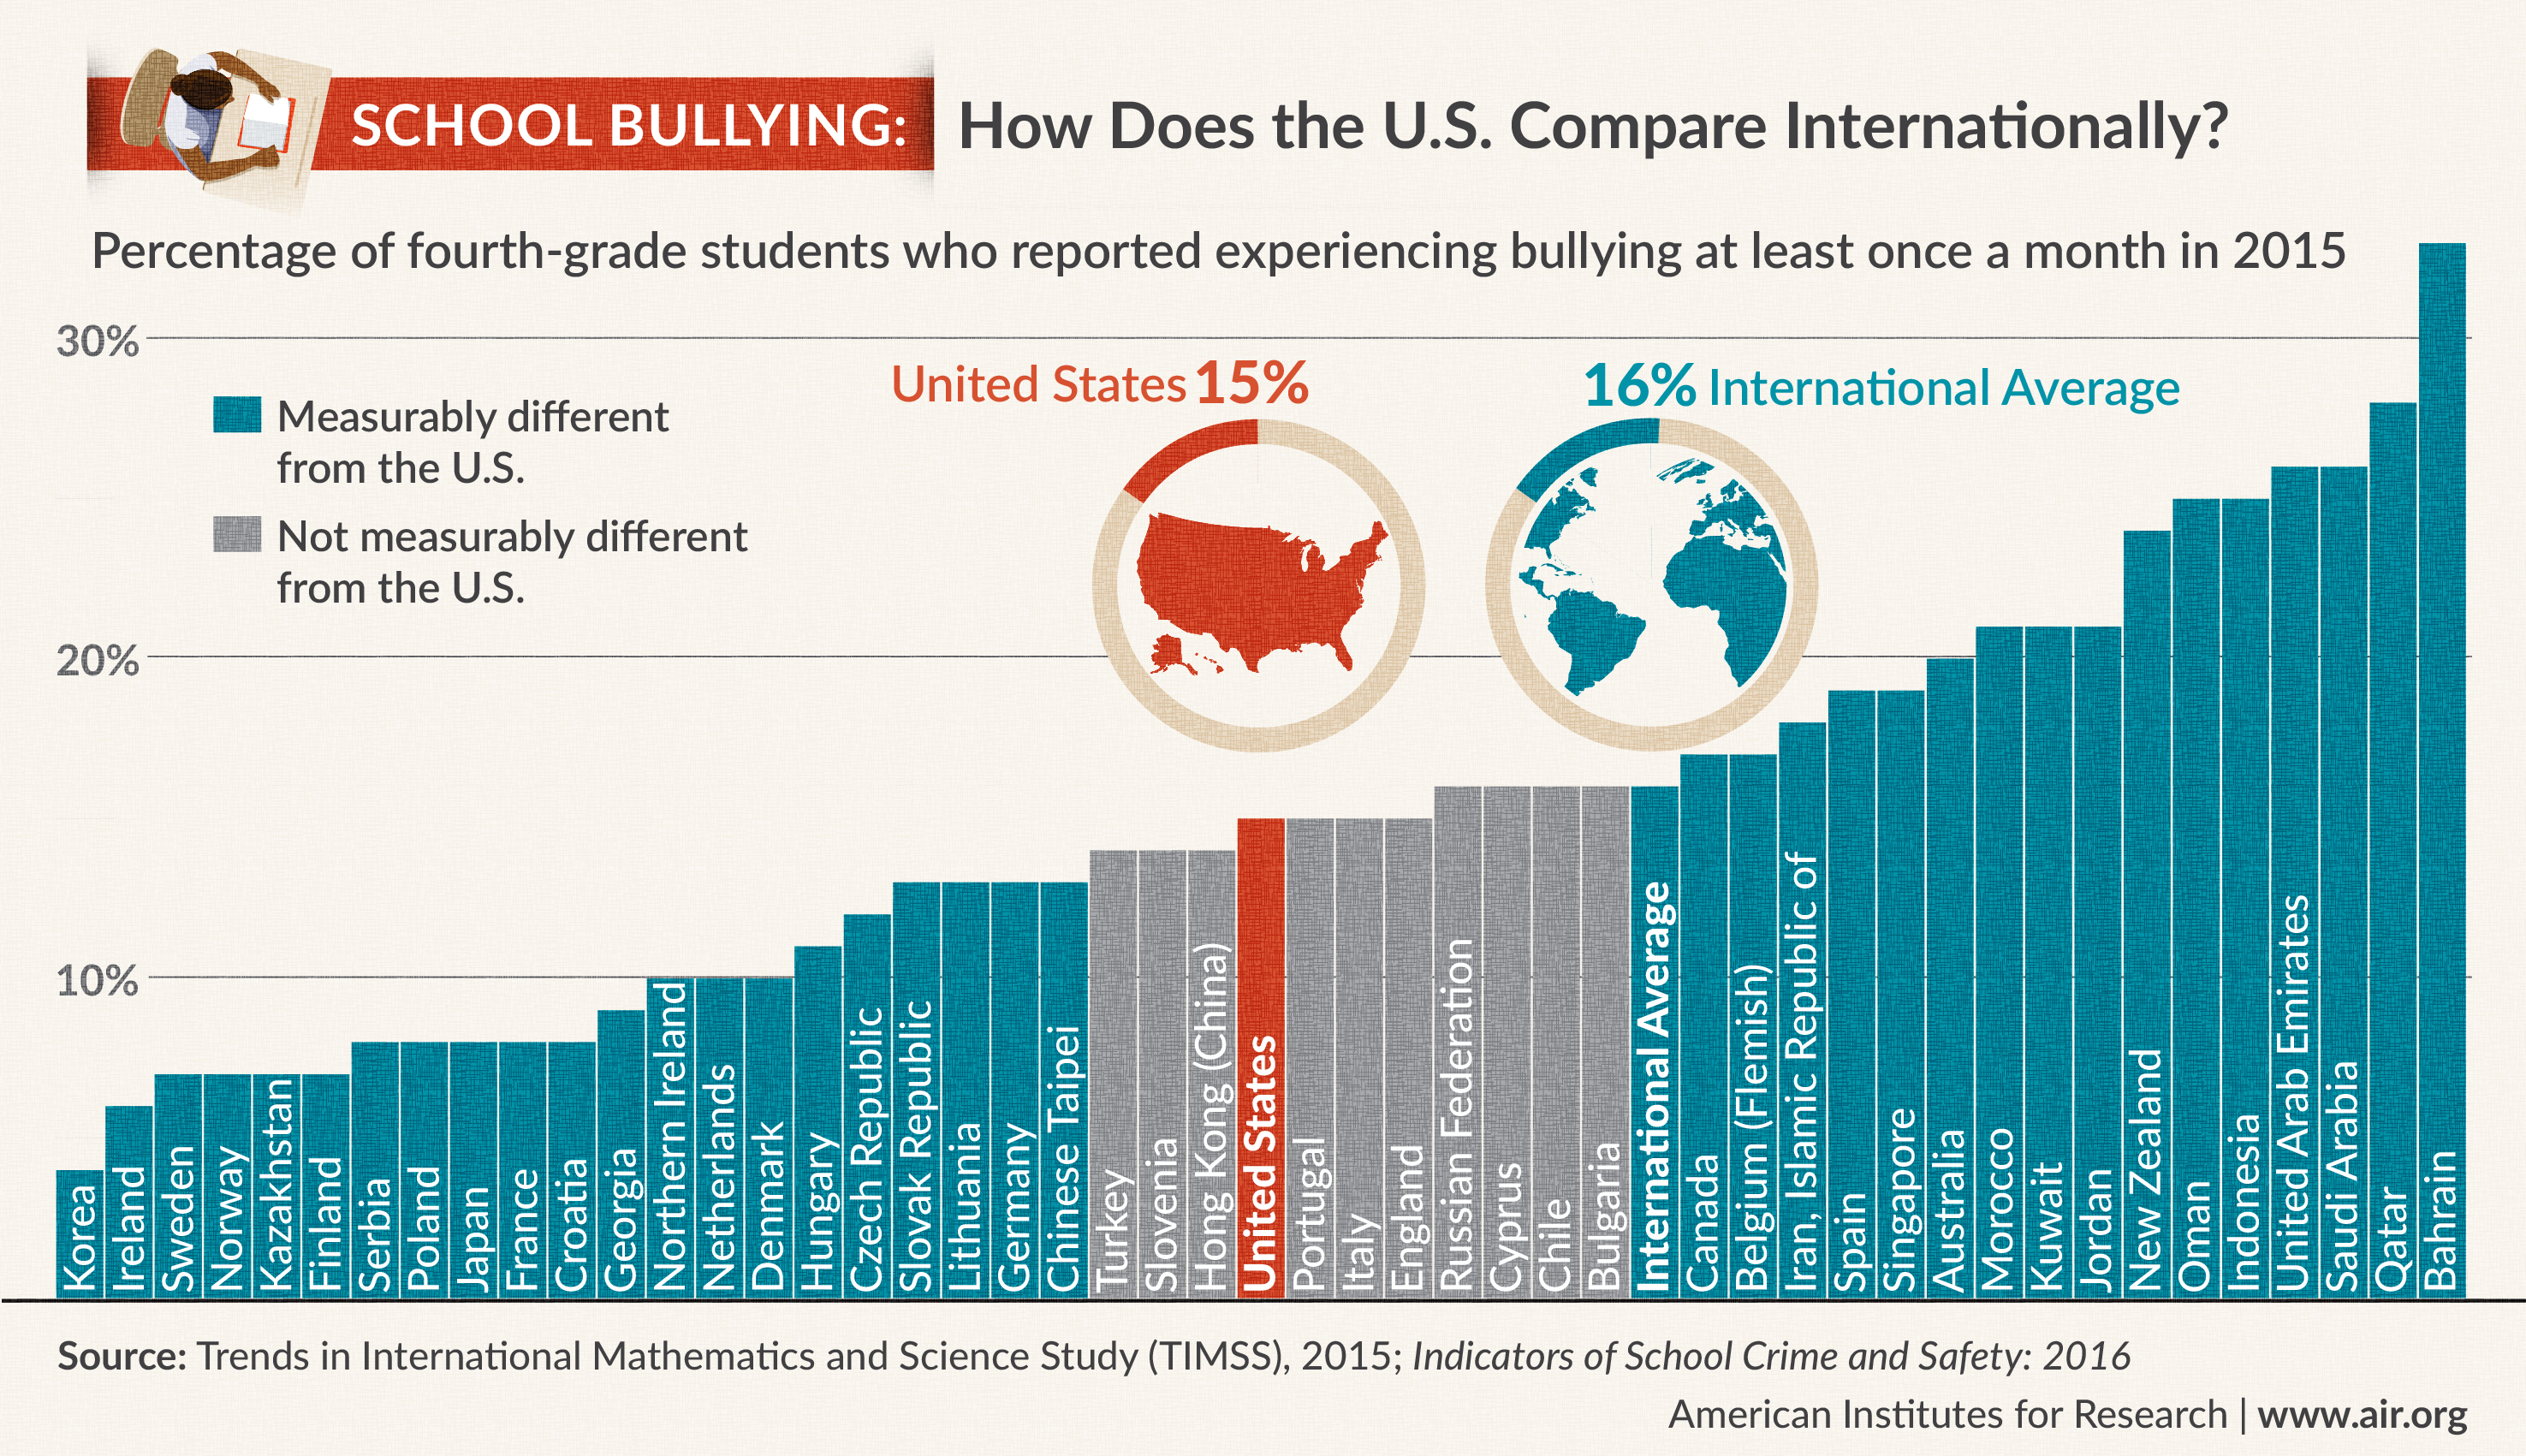 In 2015, about 15 percent of U.S. fourth-graders and 7 percent of U.S. eighth-graders reported experiencing bullying at least once a month. These percentages were lower than the international averages of 16 and 8 percent